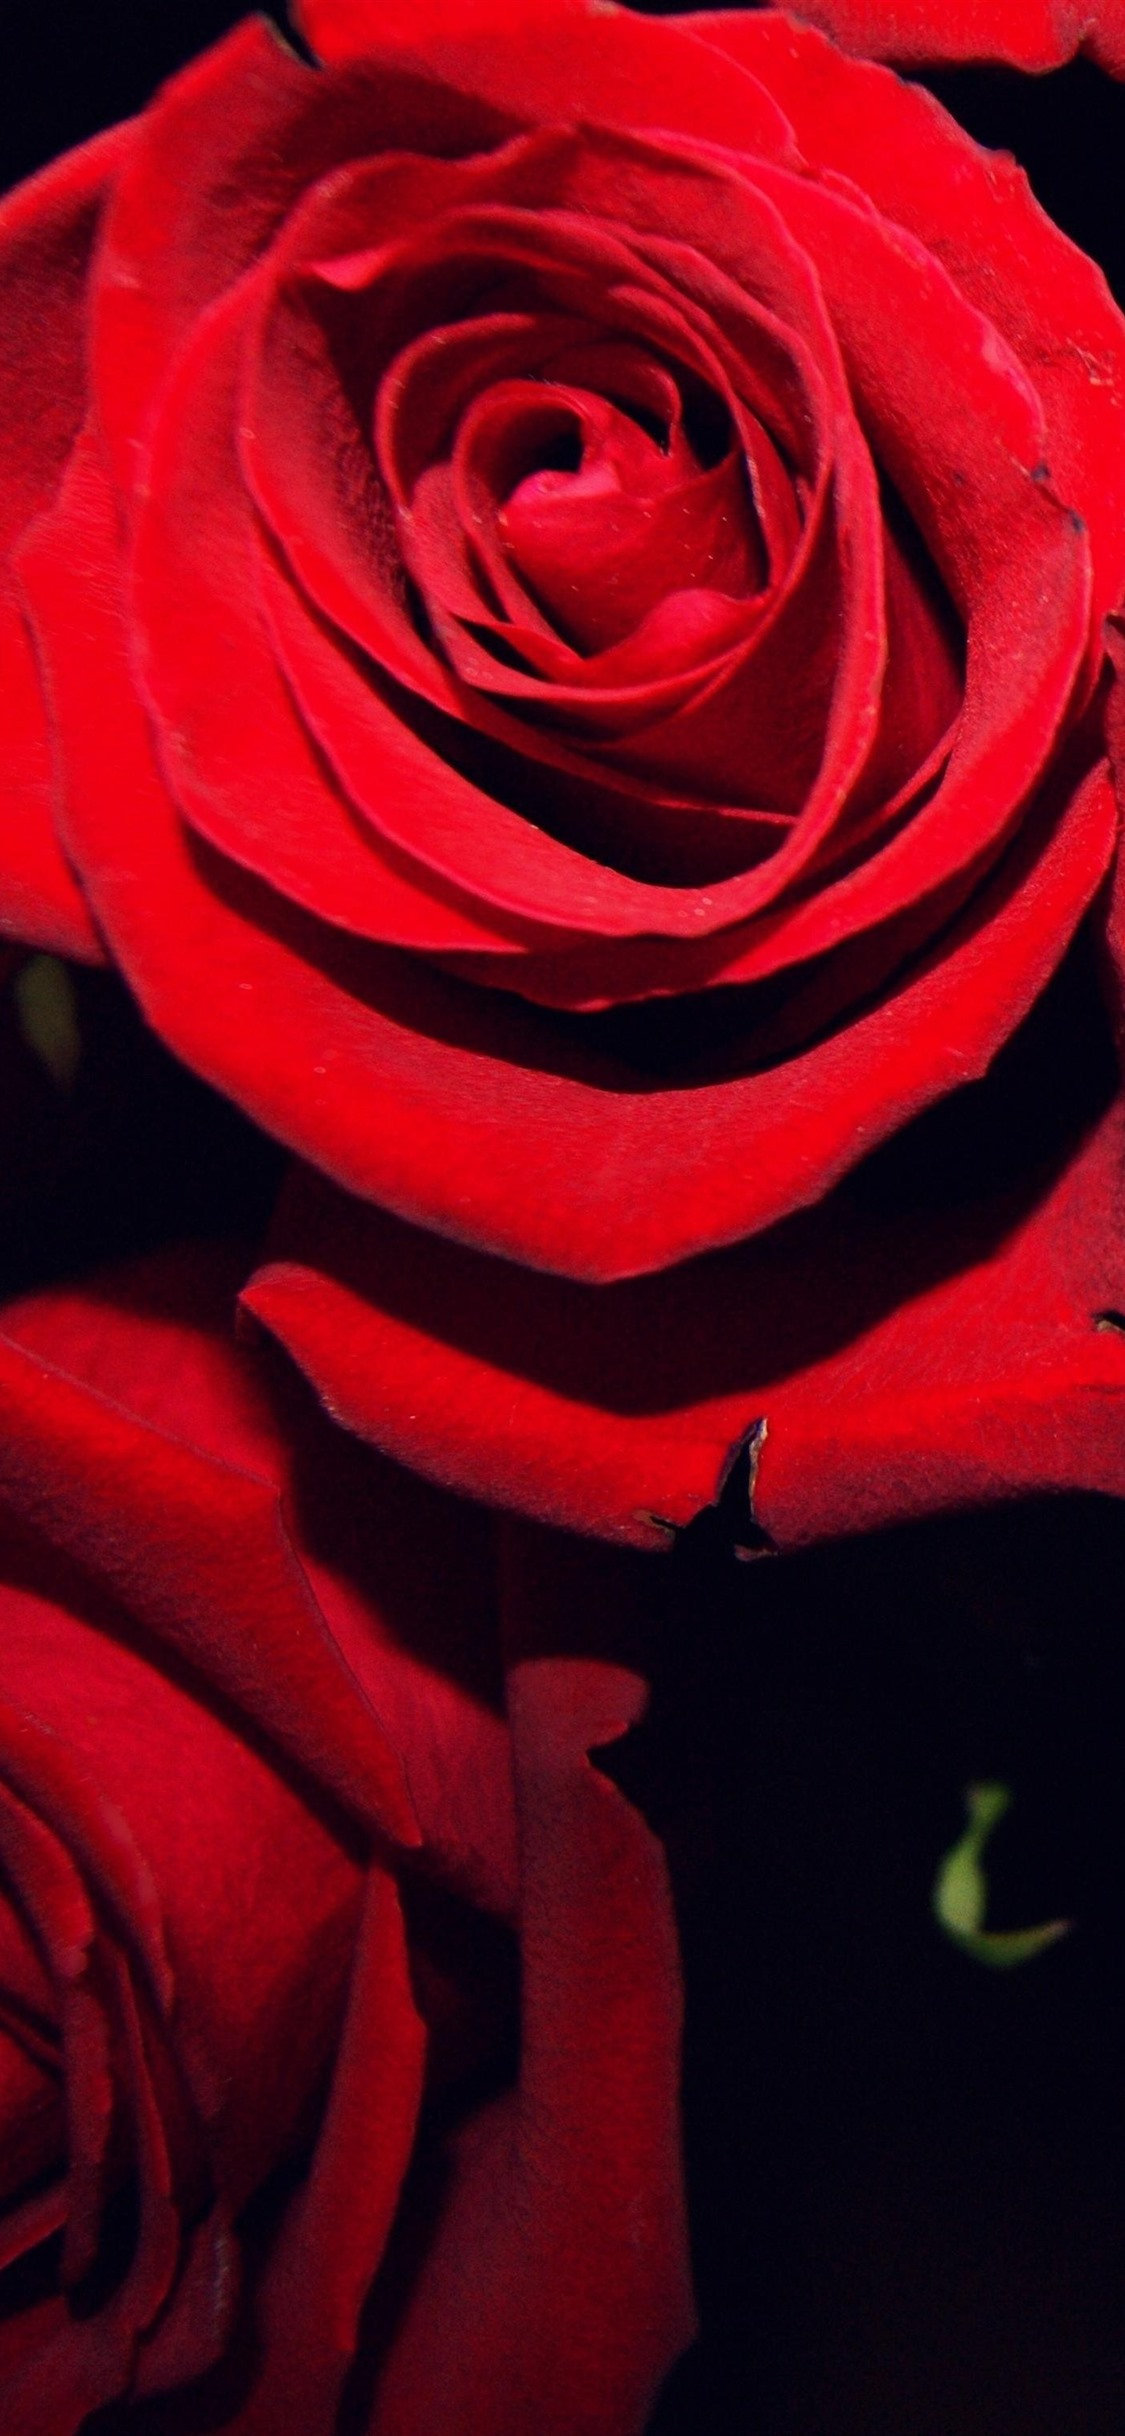 Red Roses Black Background 1242x2688 Iphone 11 Pro Xs Max Wallpaper Background Picture Image